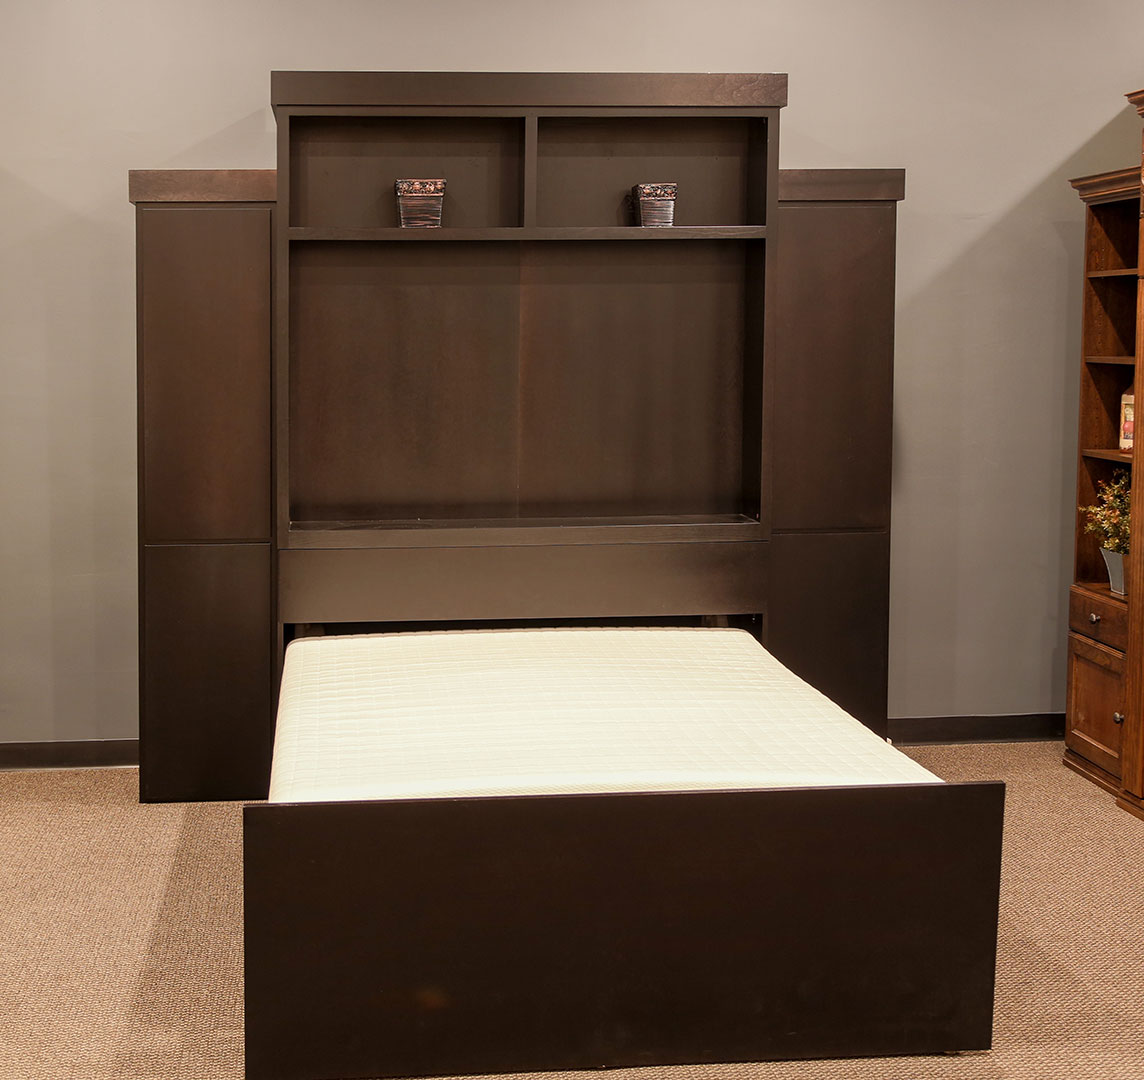 American Modern Power Wallbed